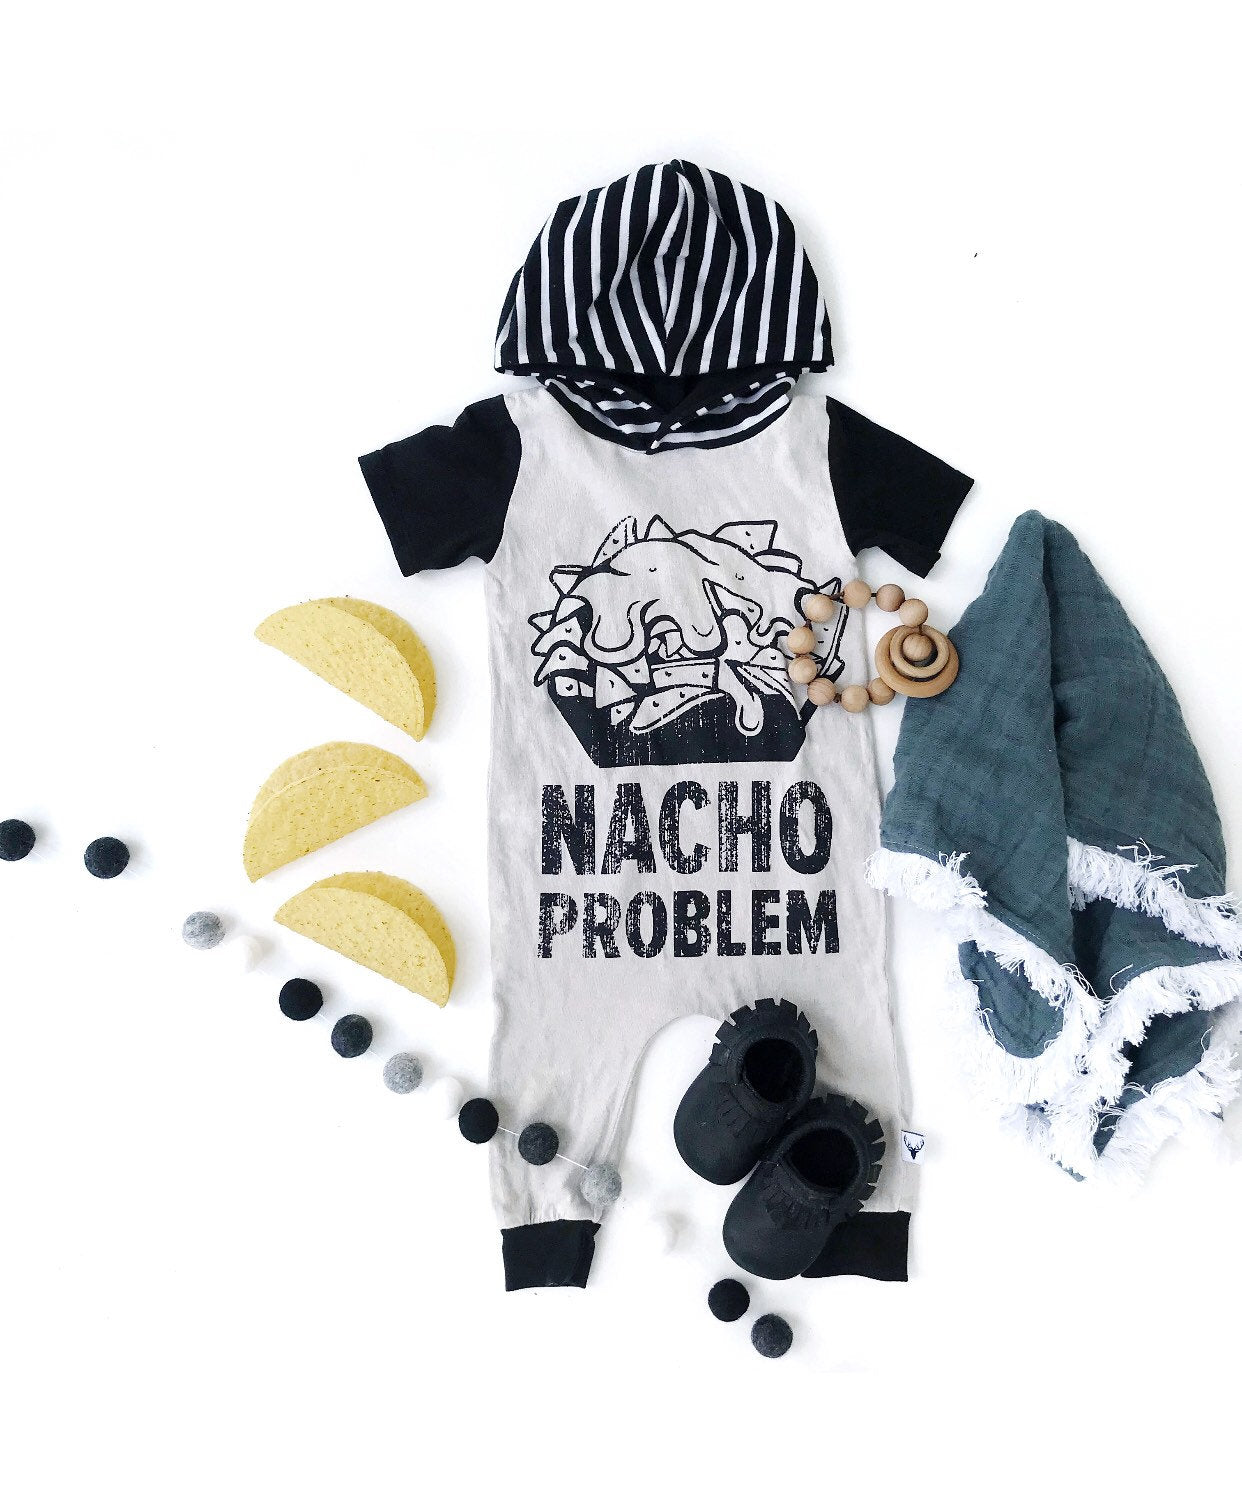 Nacho Problem Funny Romper/Dress/Hoodie, Romper Flat Lay